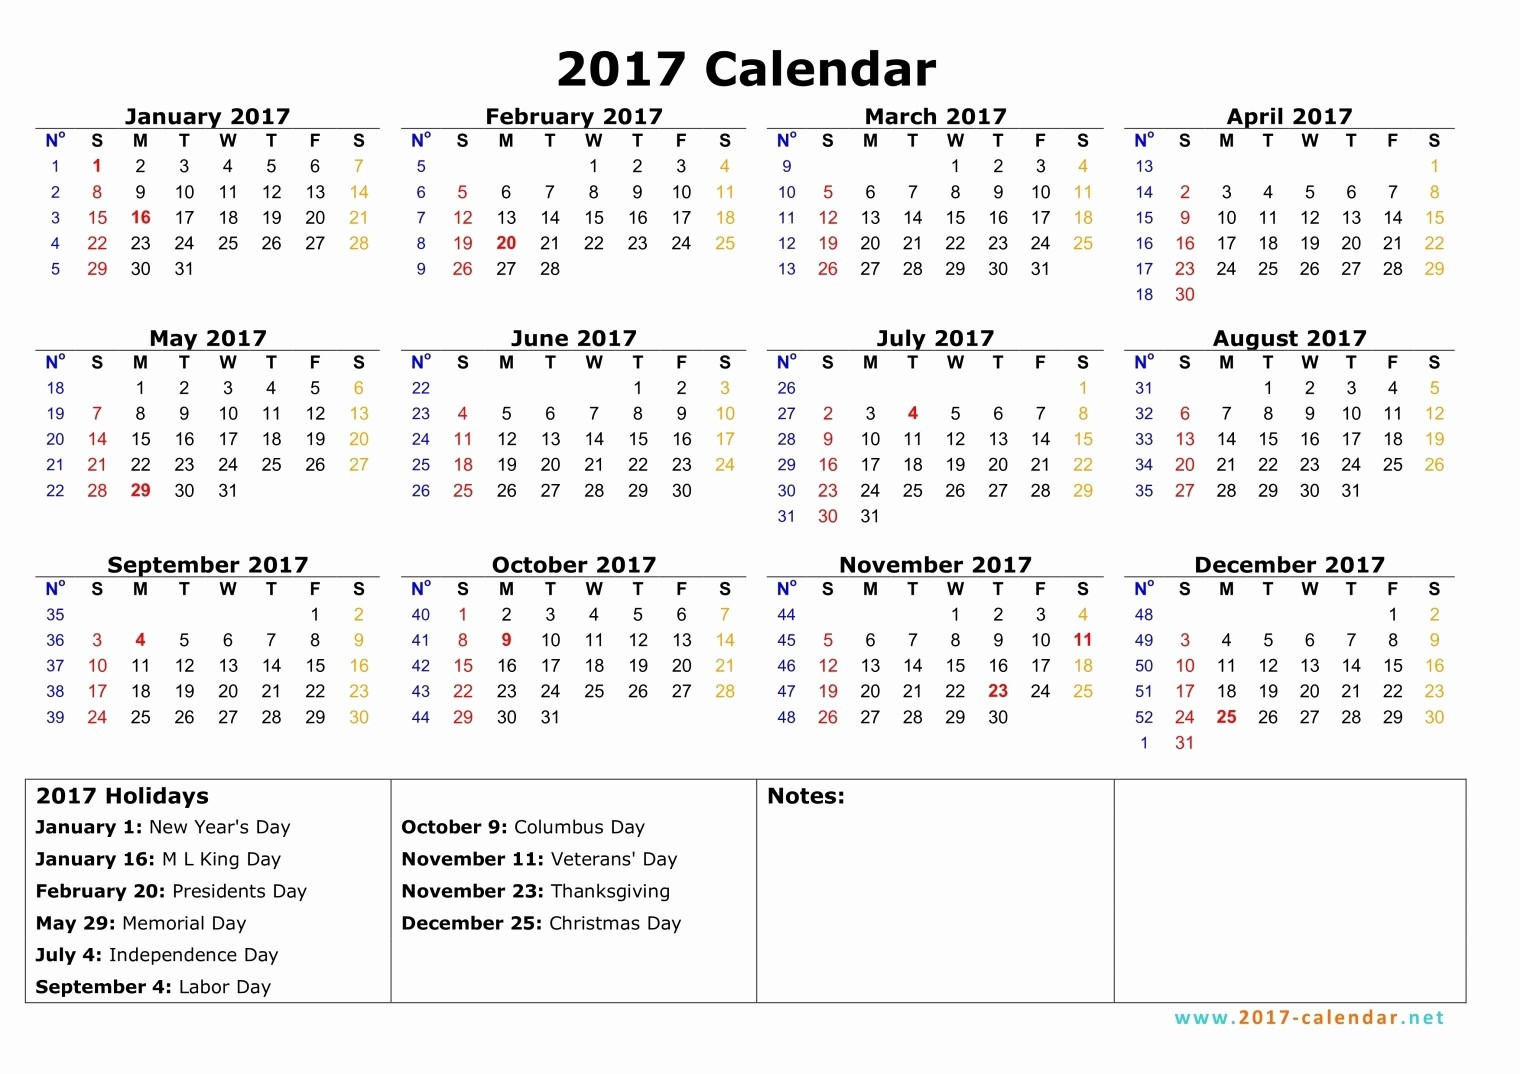 Calendar 2017 Monday to Sunday New Monday to Sunday Monthly Calendar 2017